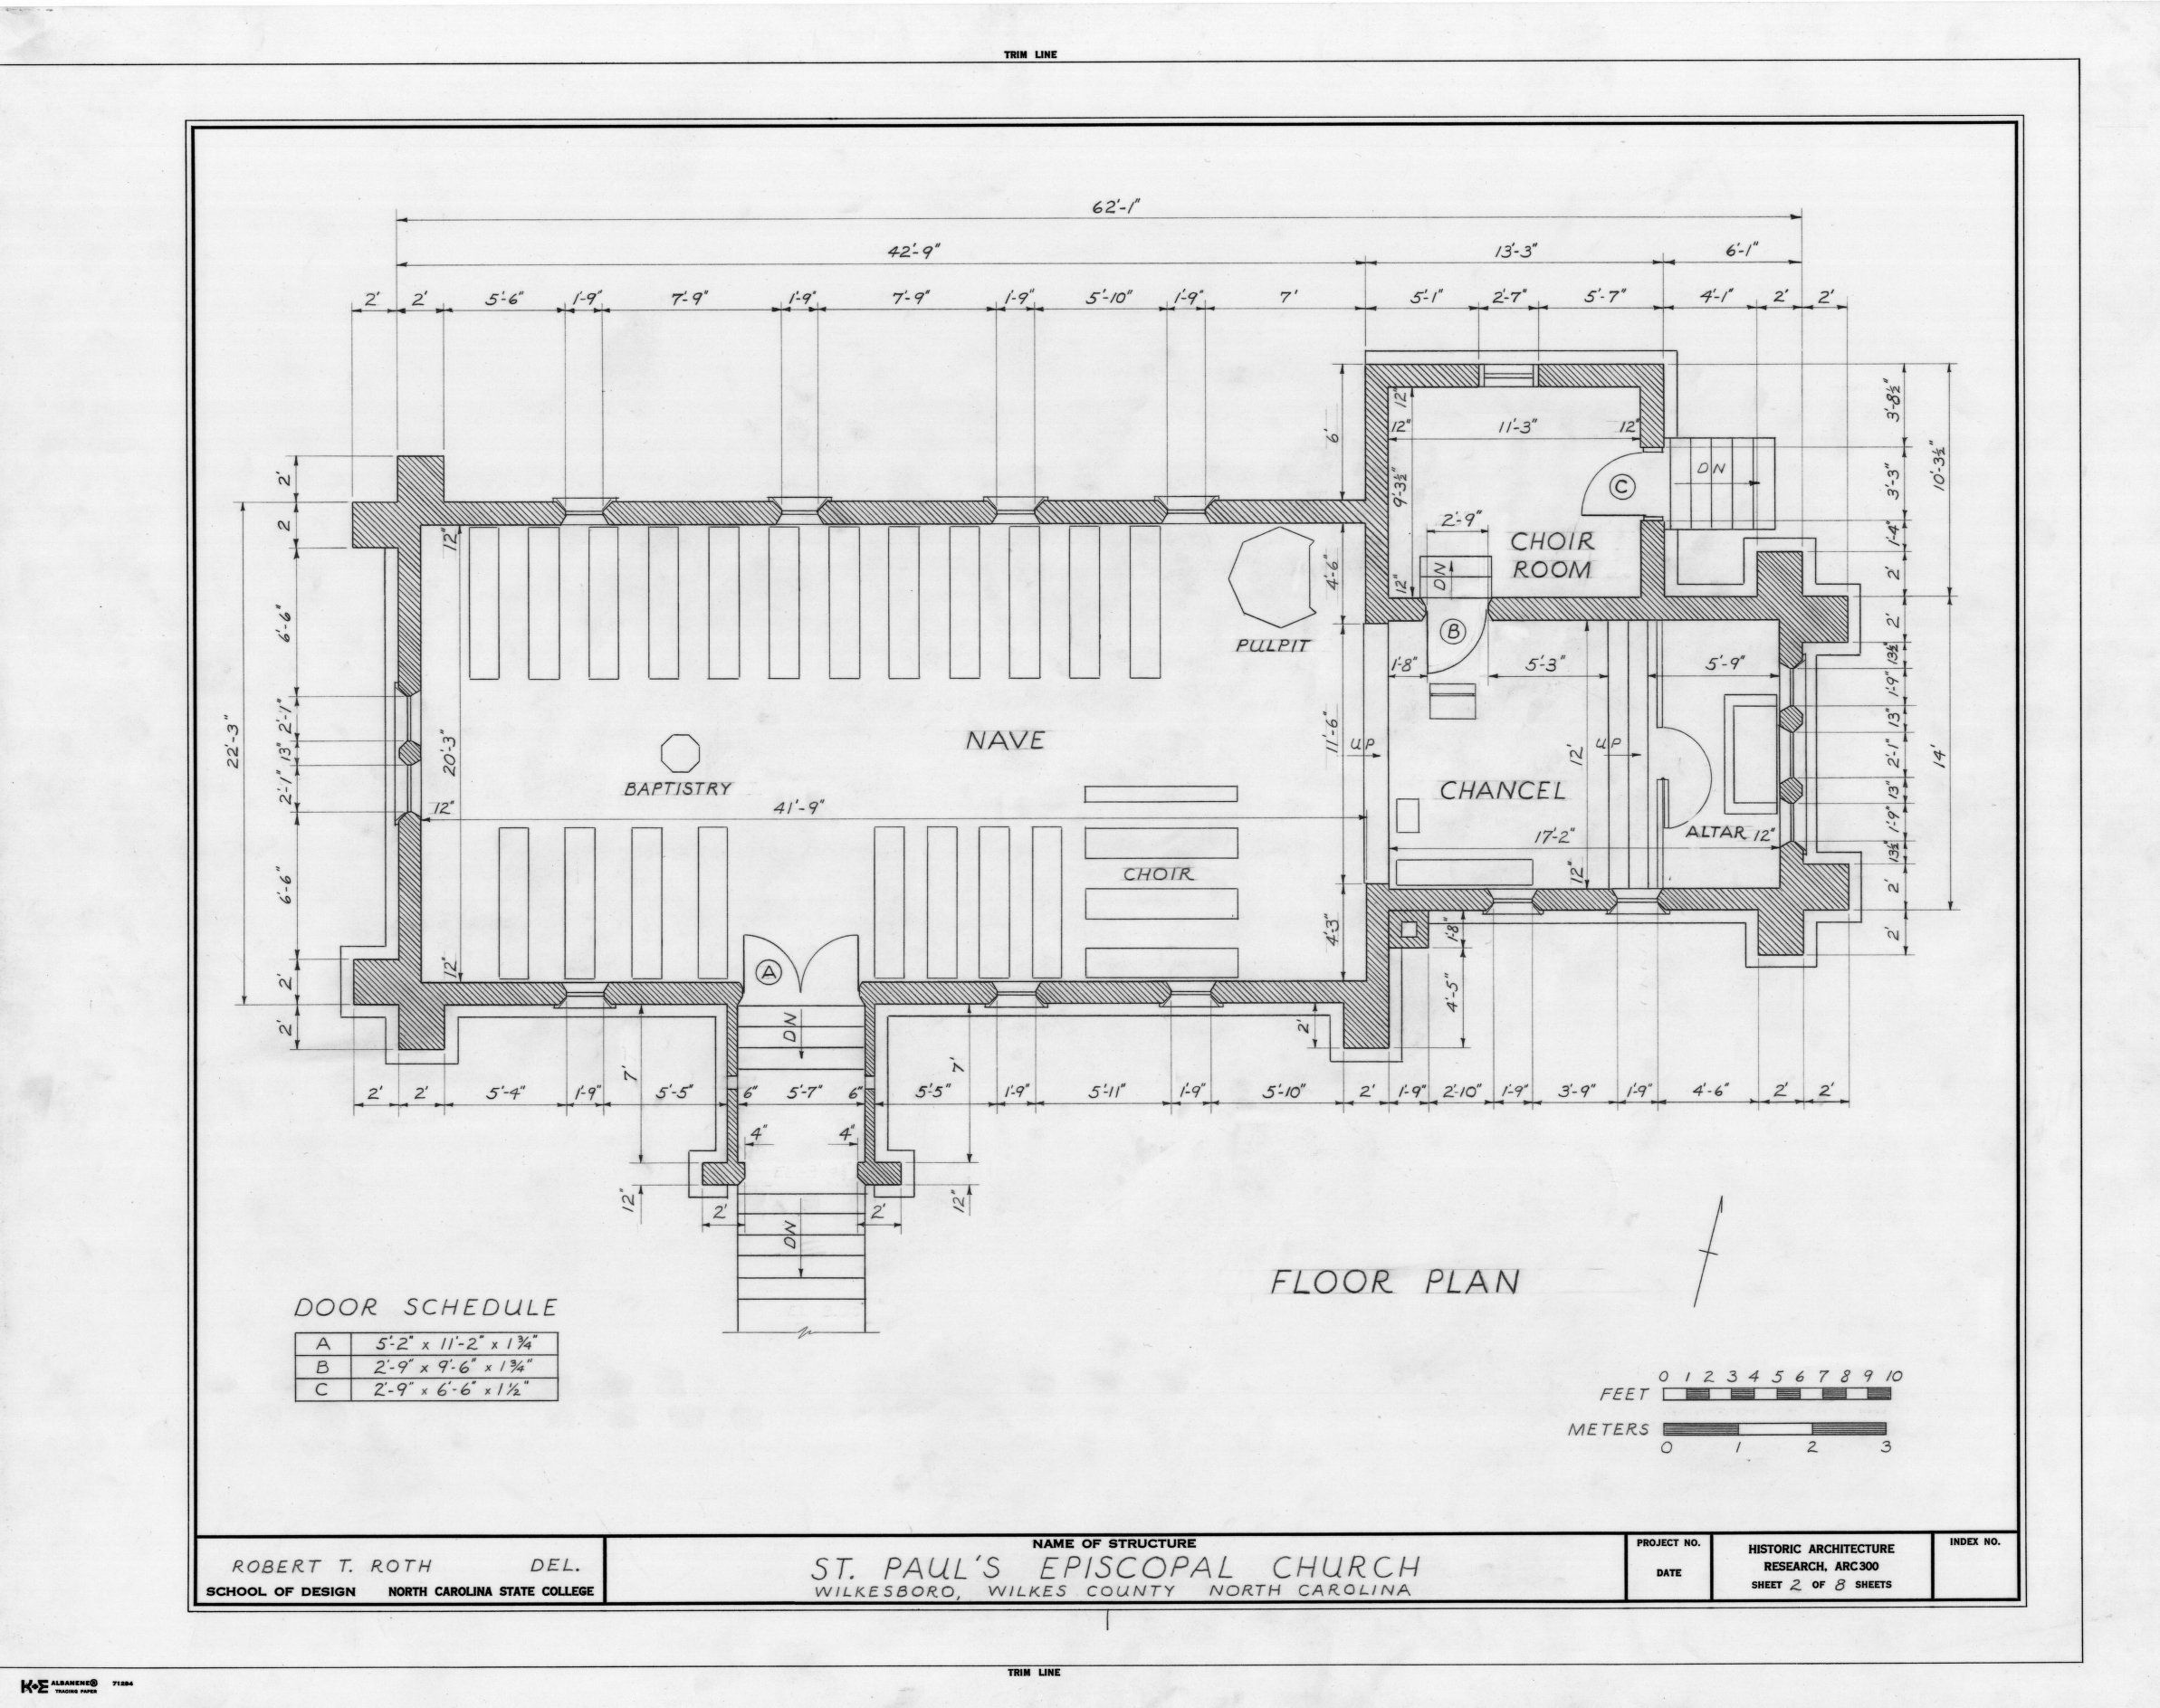 Reformed episcopal church plan google search st for Floor plan church